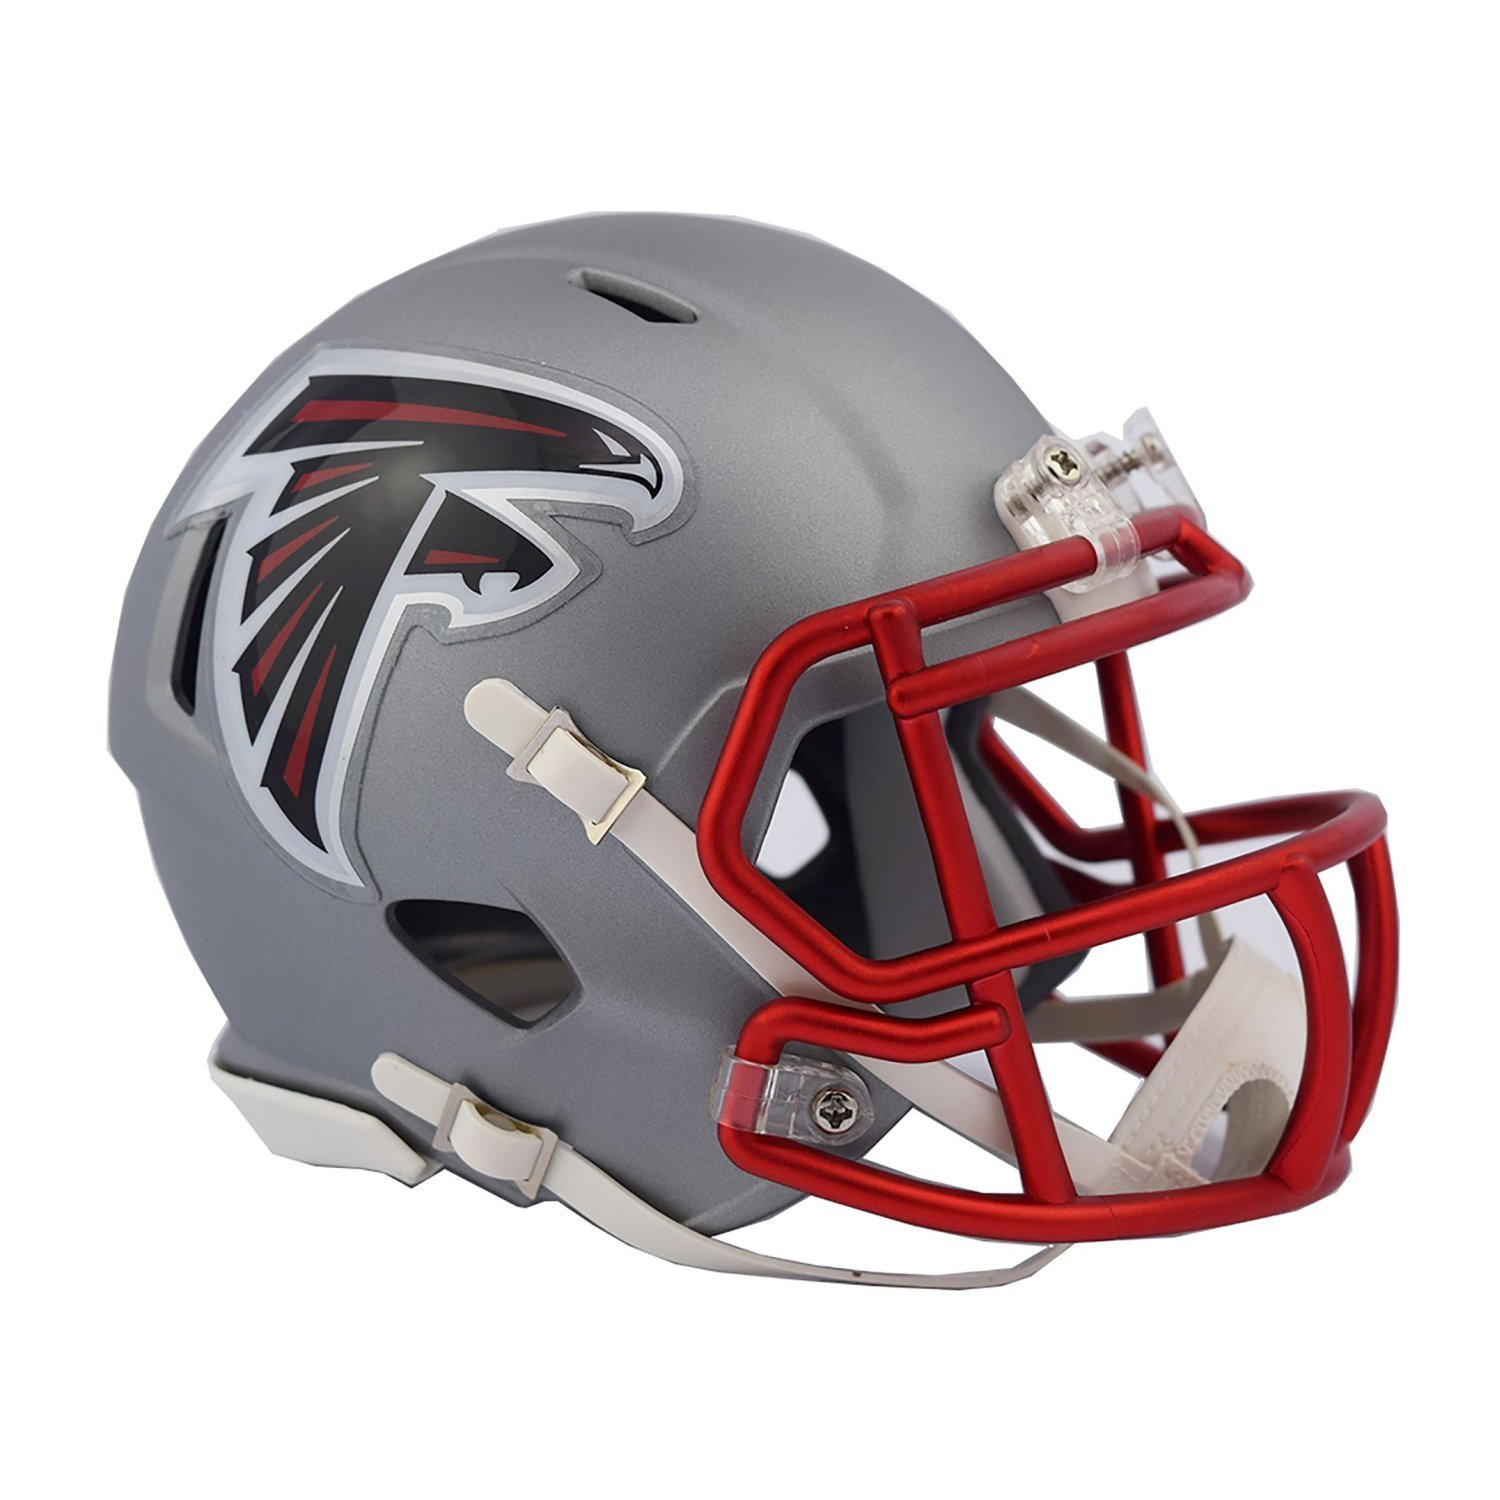 NFL Atlanta Falcons Alternate Blaze Speed Mini Helmet by Riddell